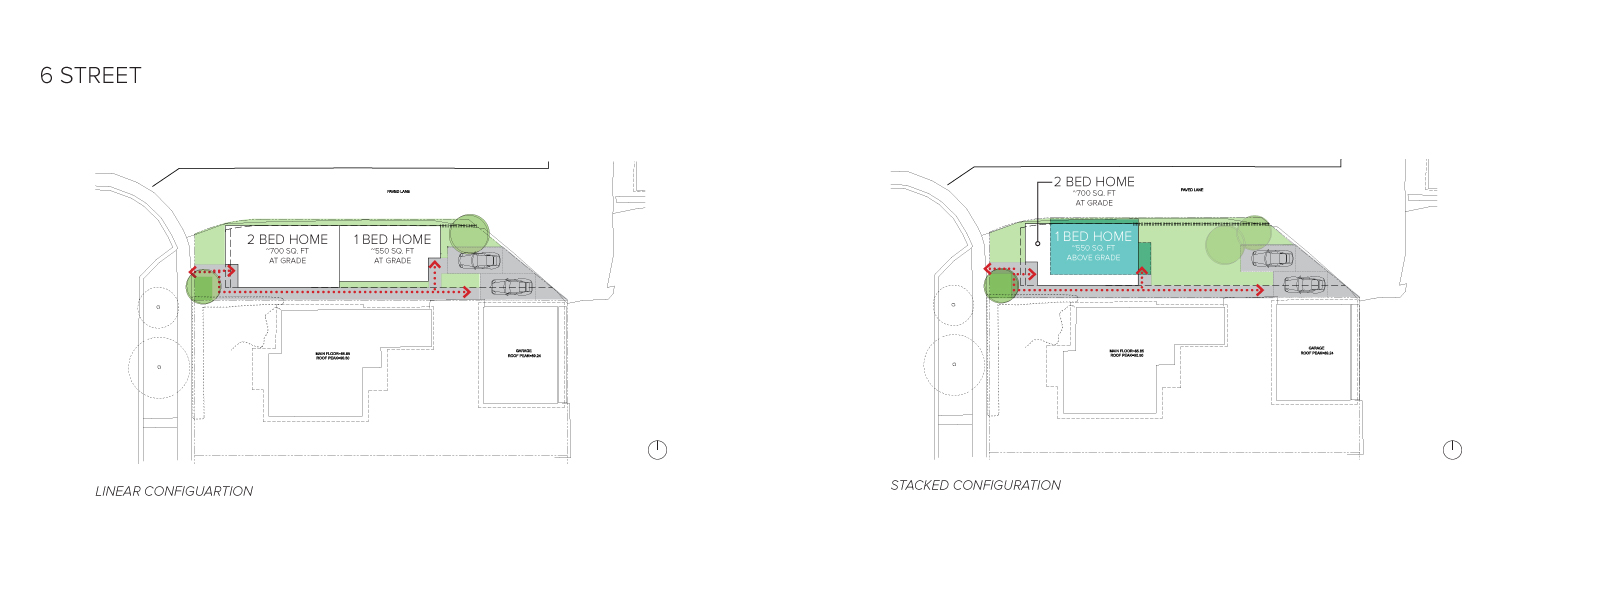 An image of the home configurations on 6 Street.